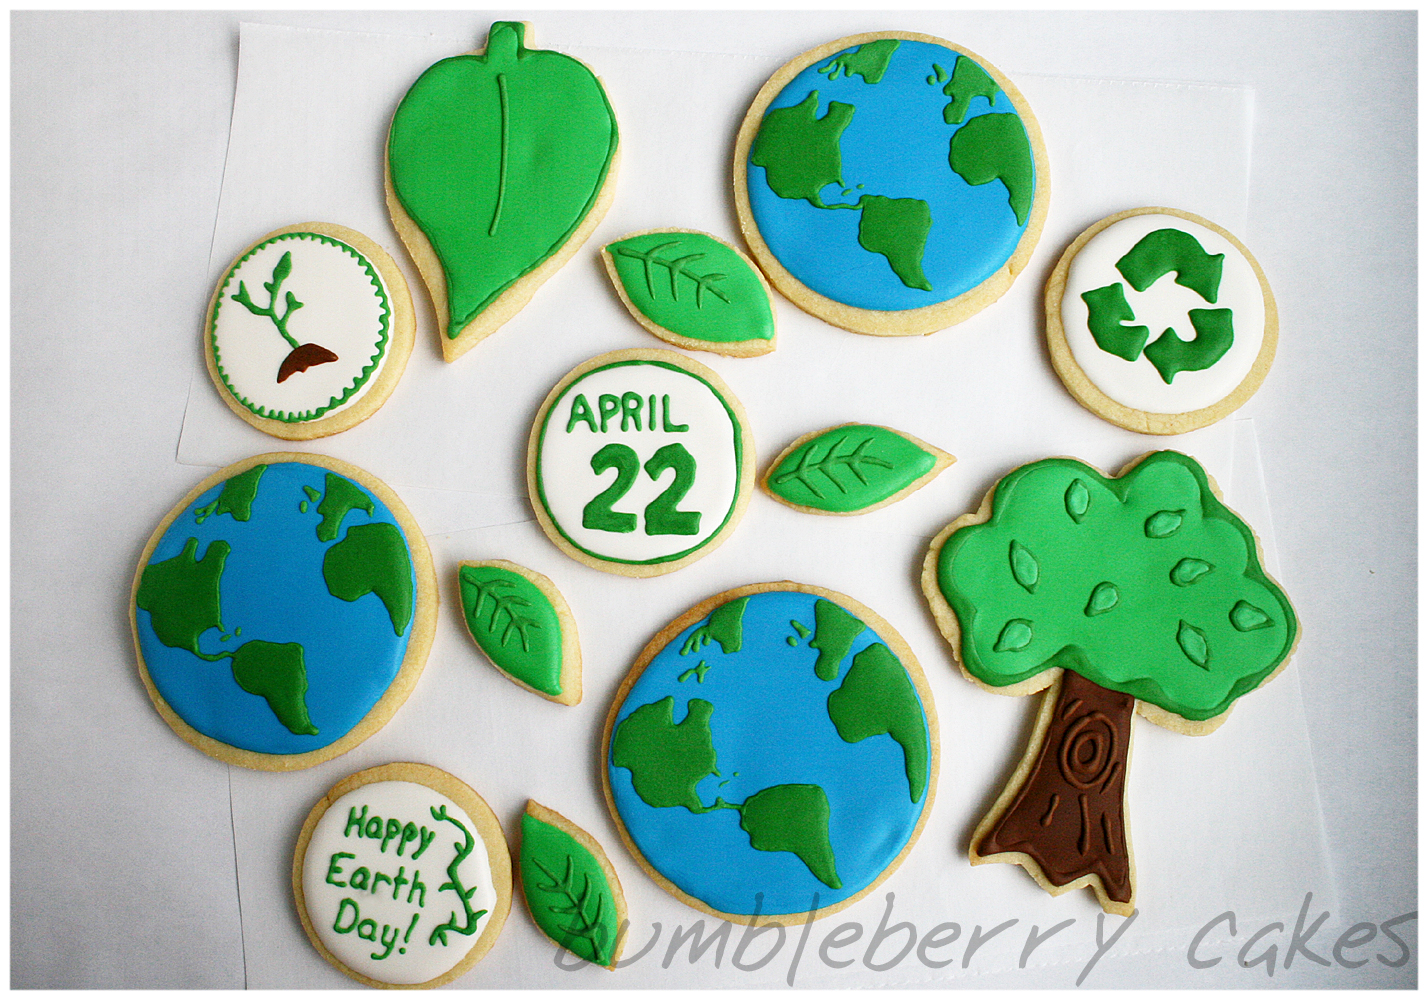 Bumbleberry cakes april 22 earth day april 22 earth day buycottarizona